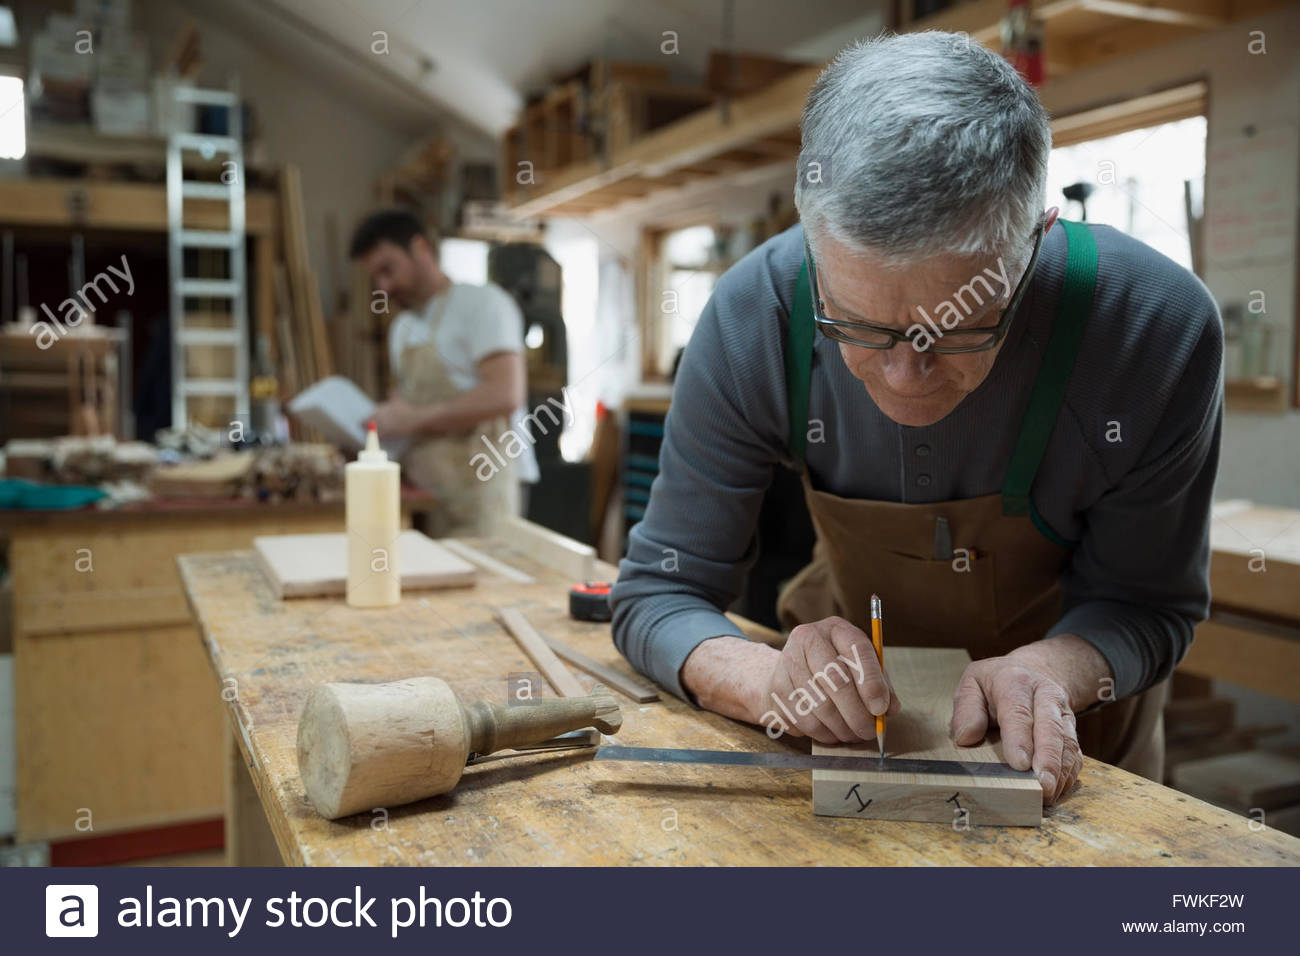 Carpenter measuring and marking wood piece in workshop - Stock Image